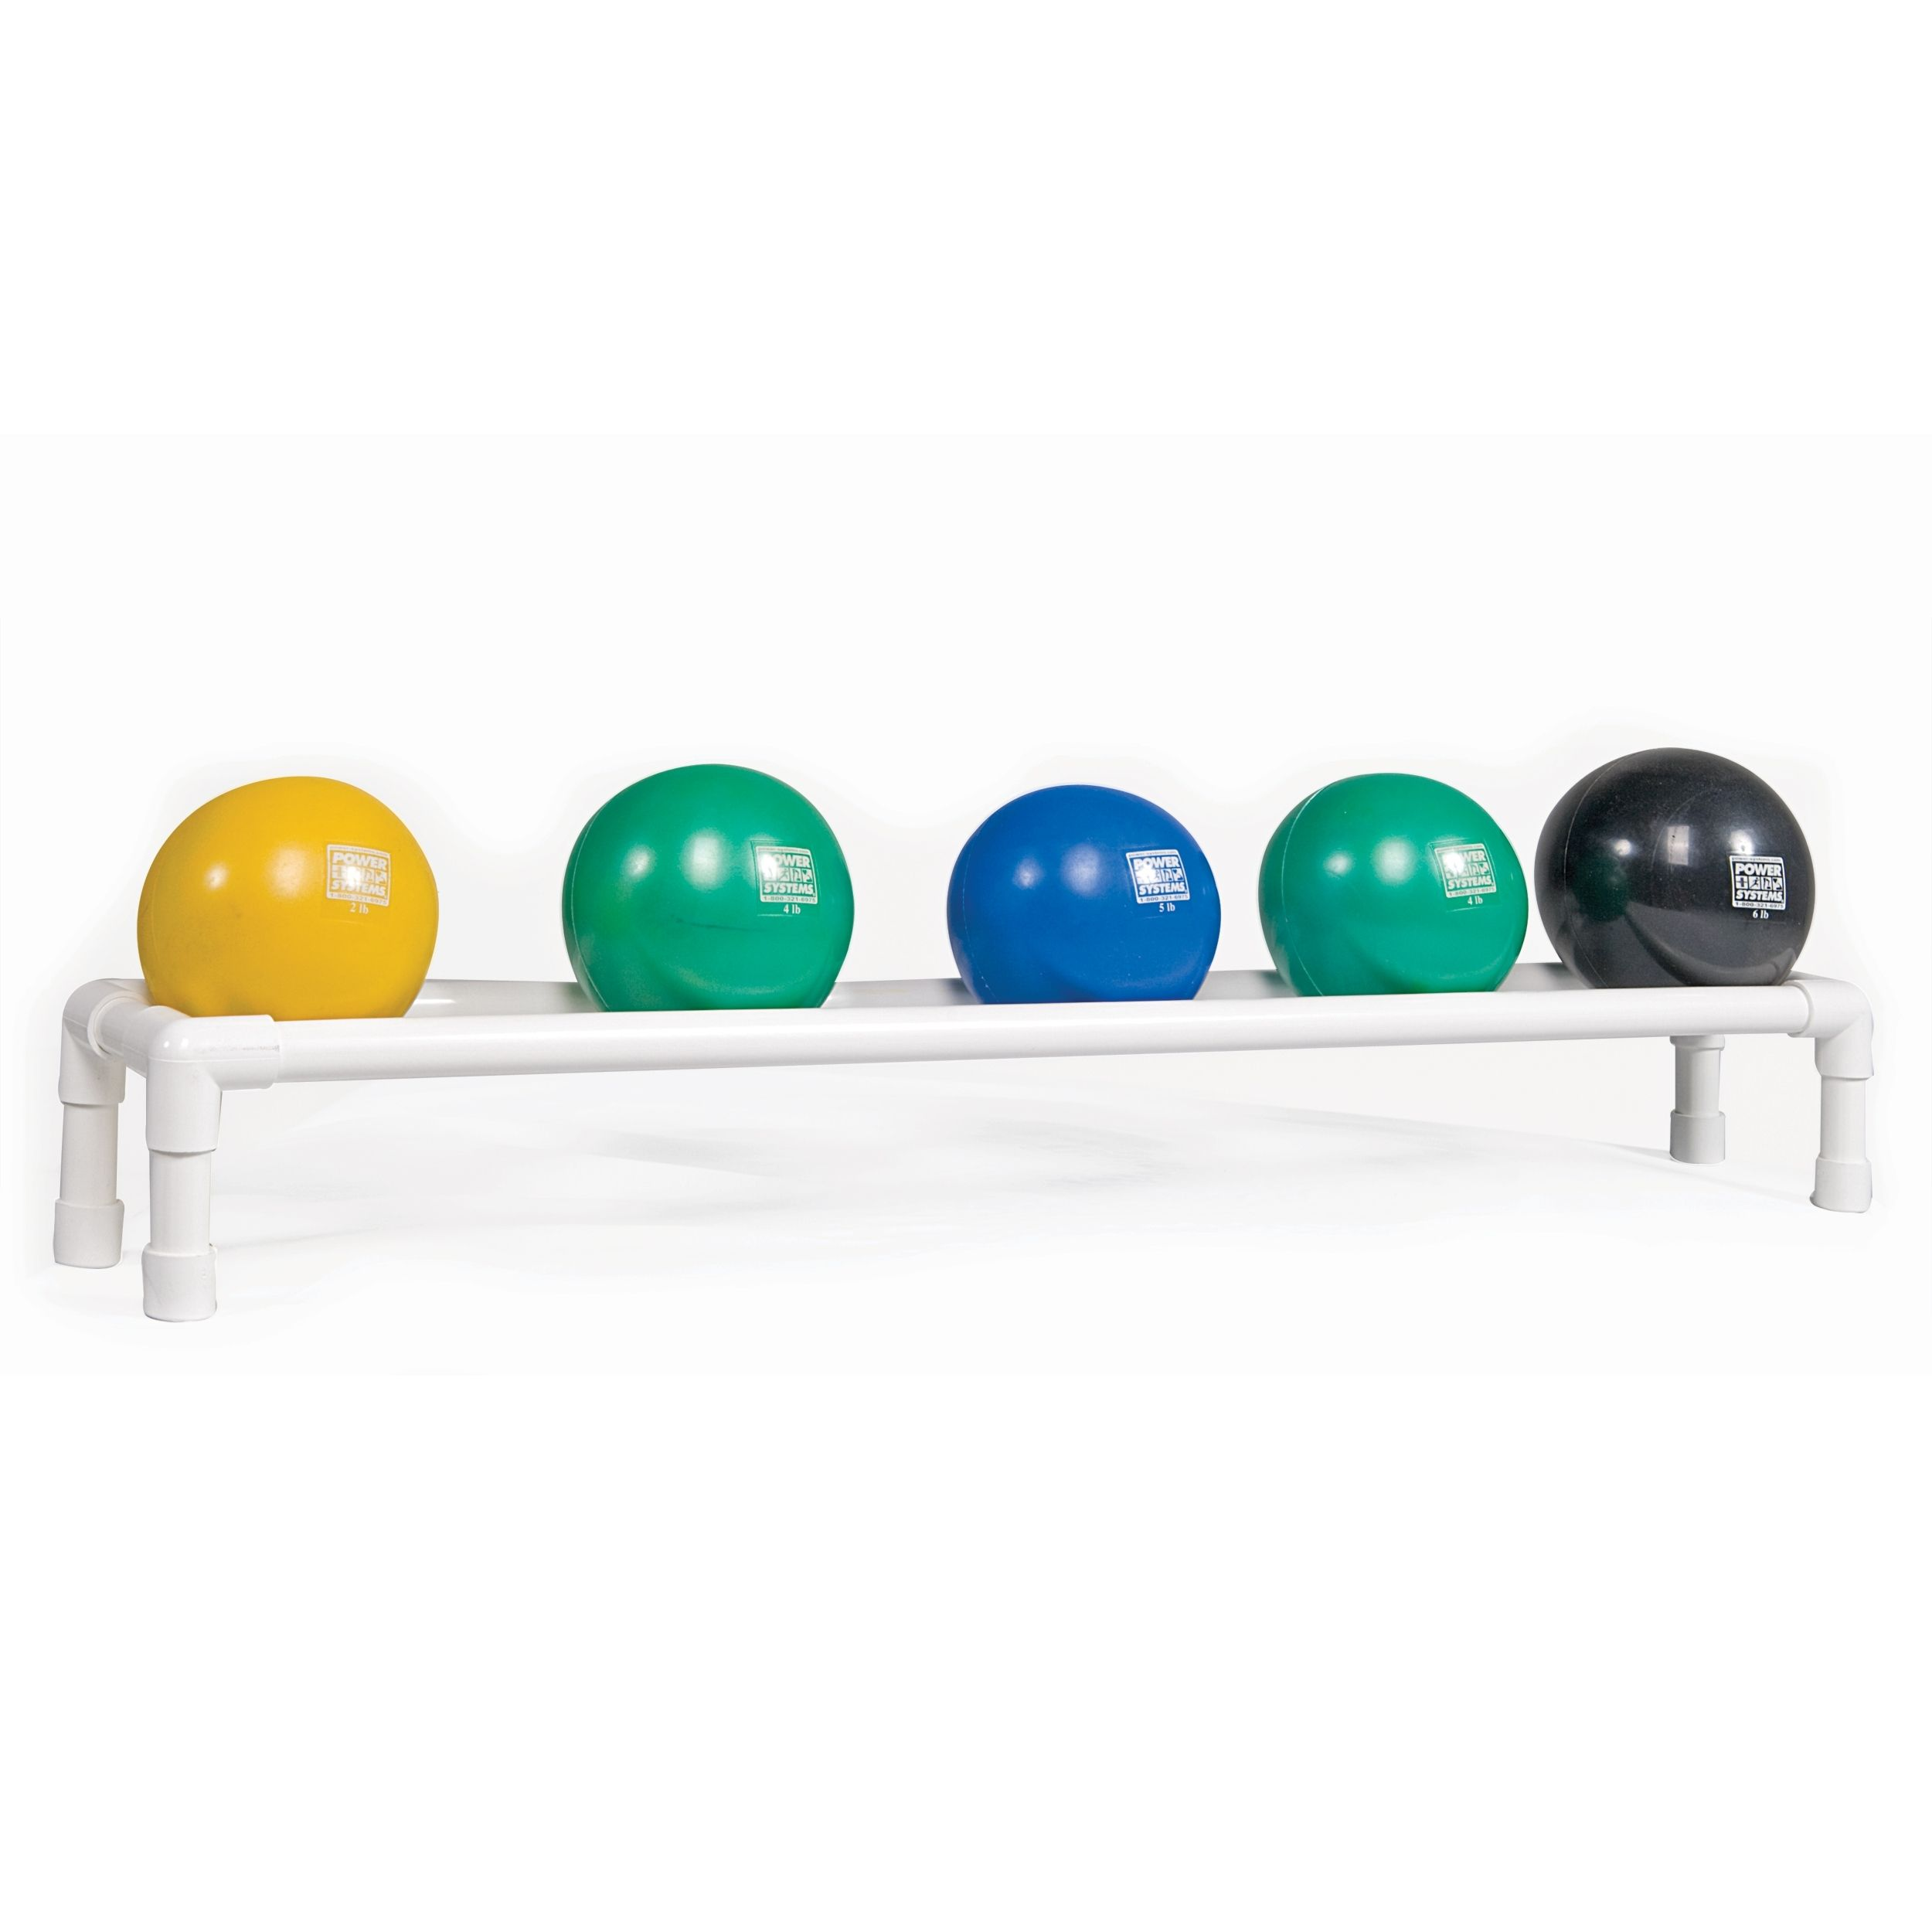 Soft Touch Med Ball Rack Kit